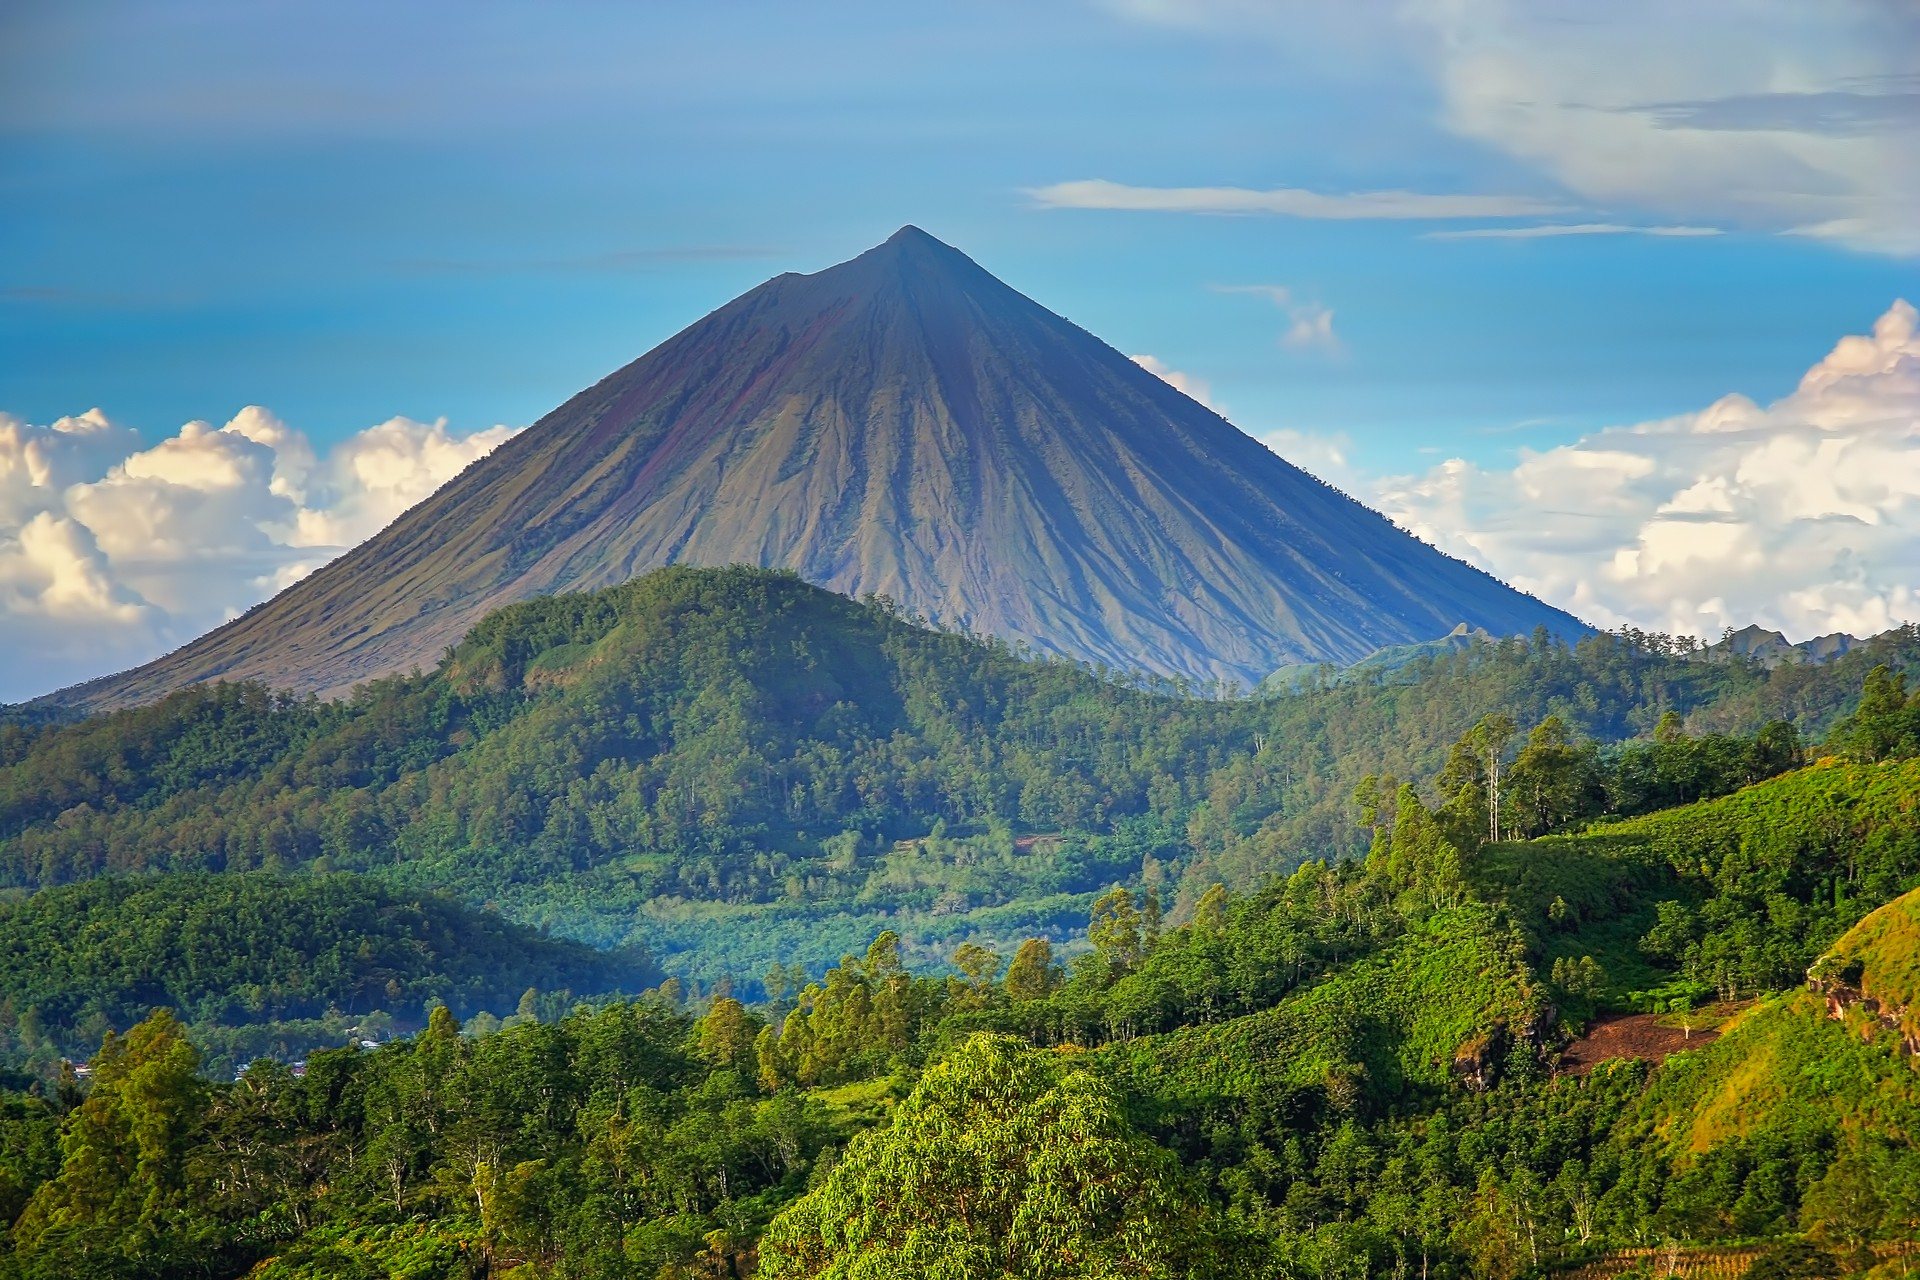 Volcano Mount Inarie on the Flores island, Indonesia